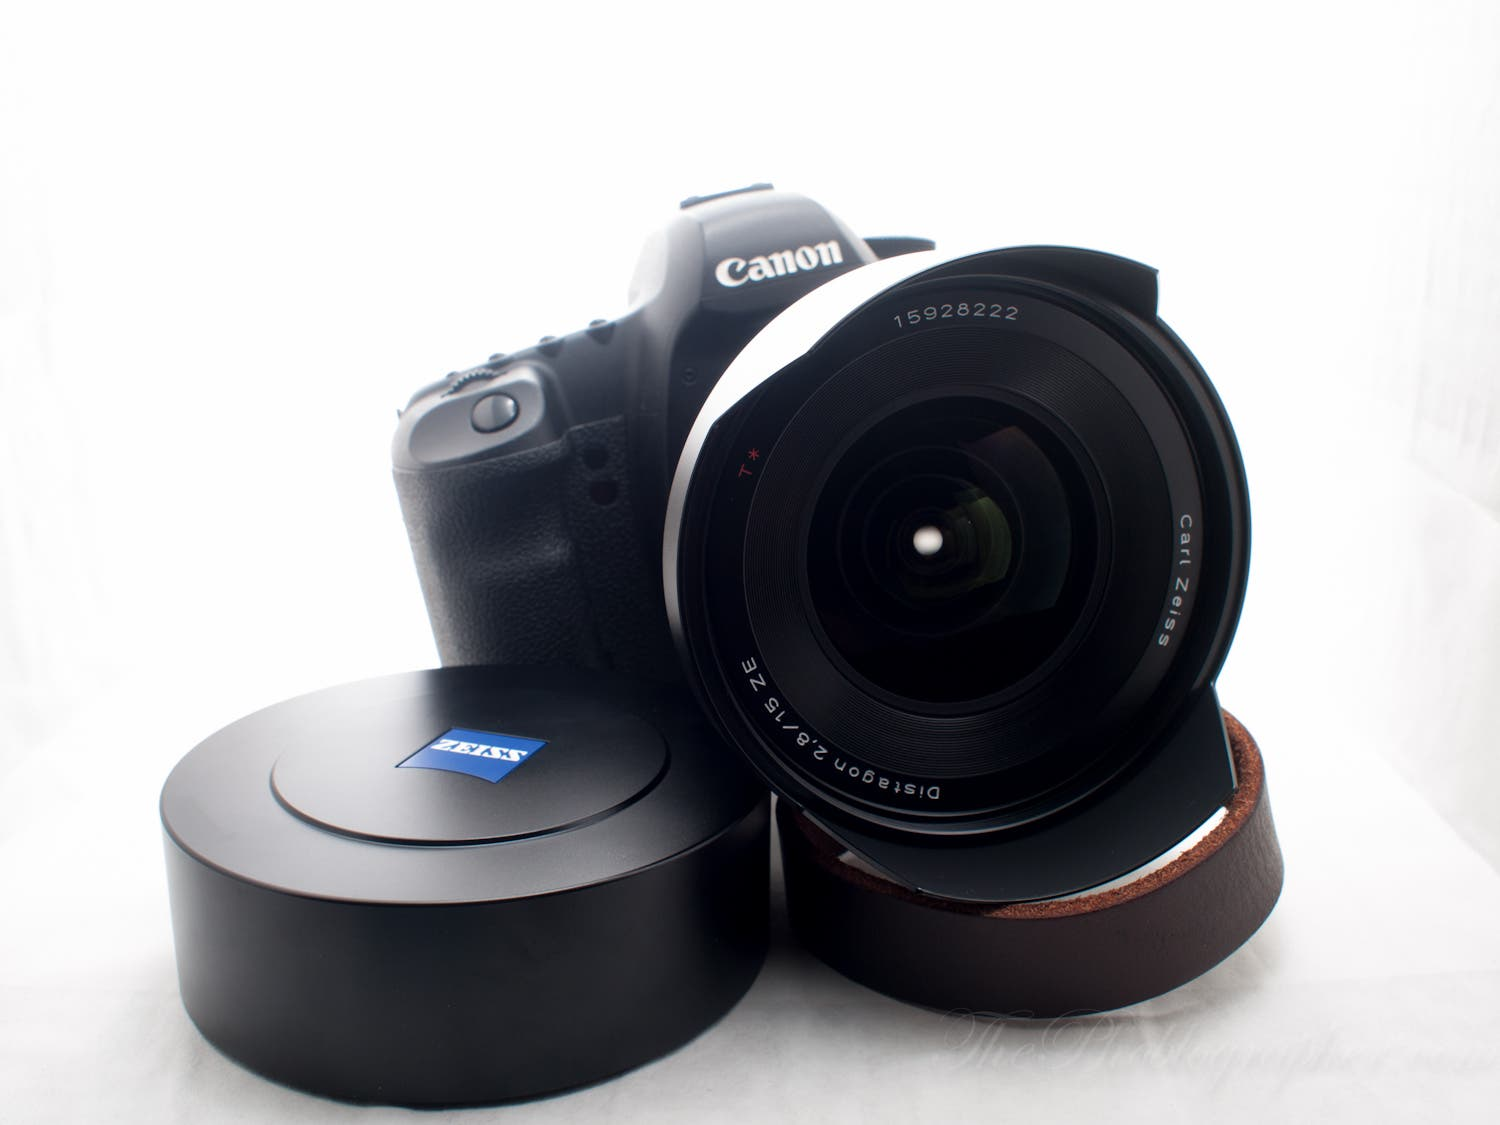 Review: Zeiss 15mm f2.8 (Canon EF Mount)